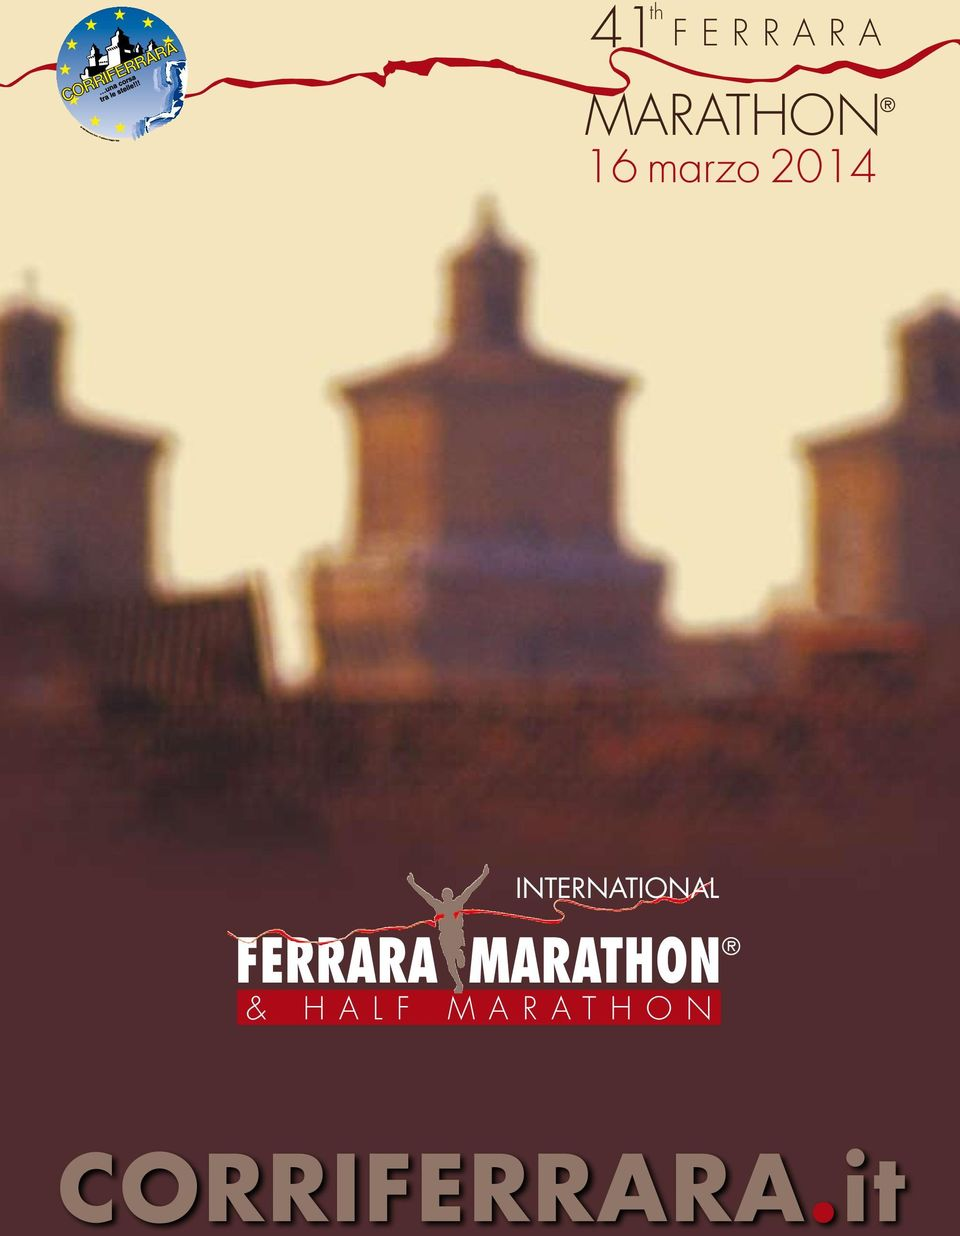 INTERNATIONAL FERRARA